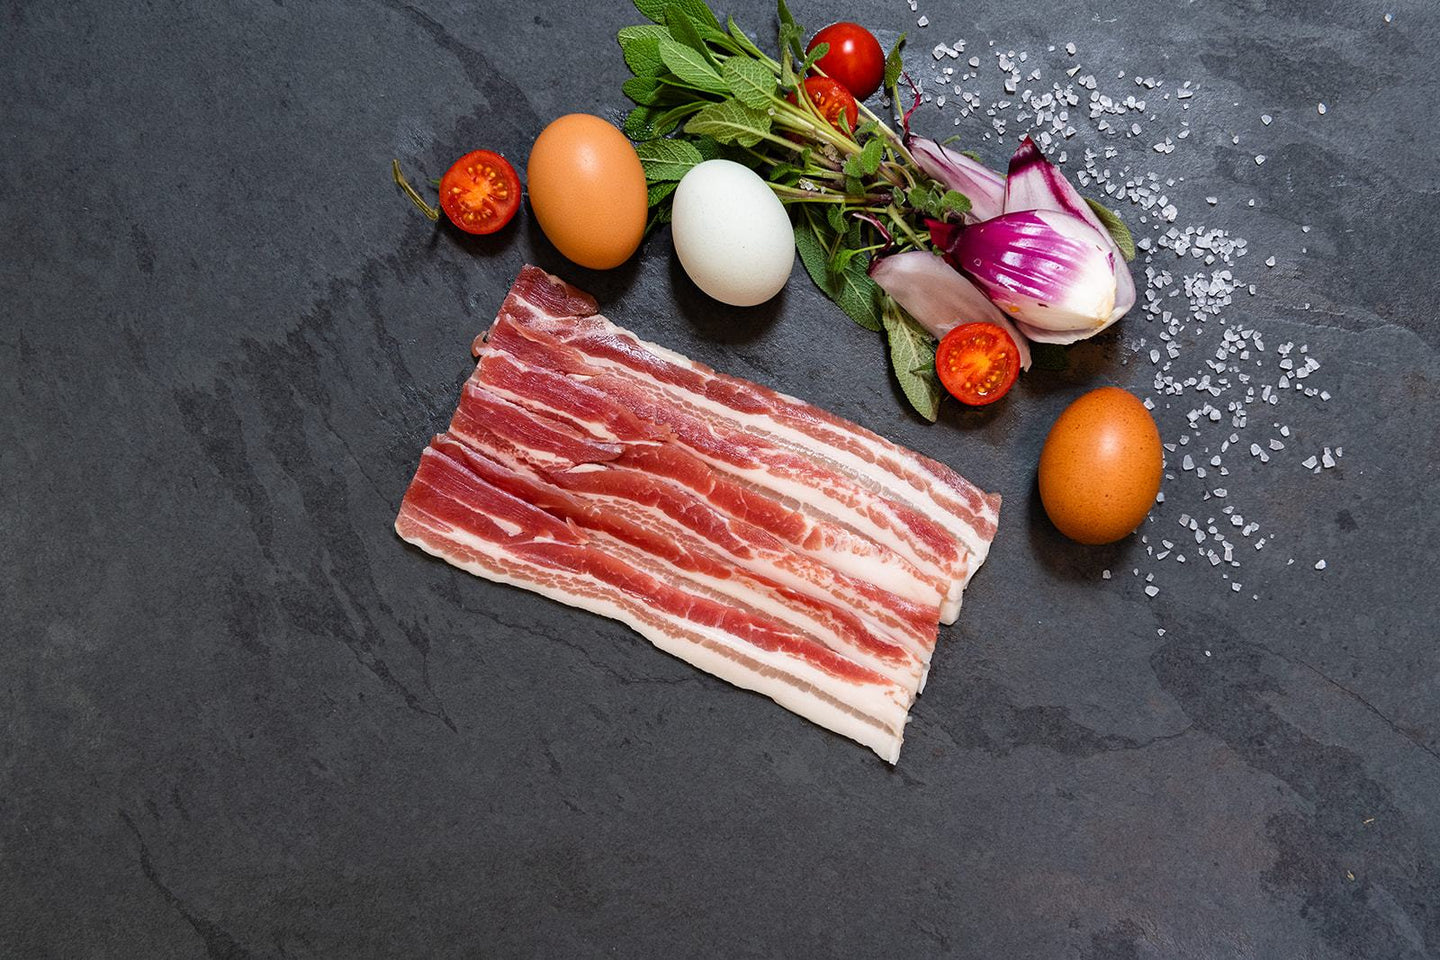 Berkshire Pork Dry Cured Smoked Streaky Bacon